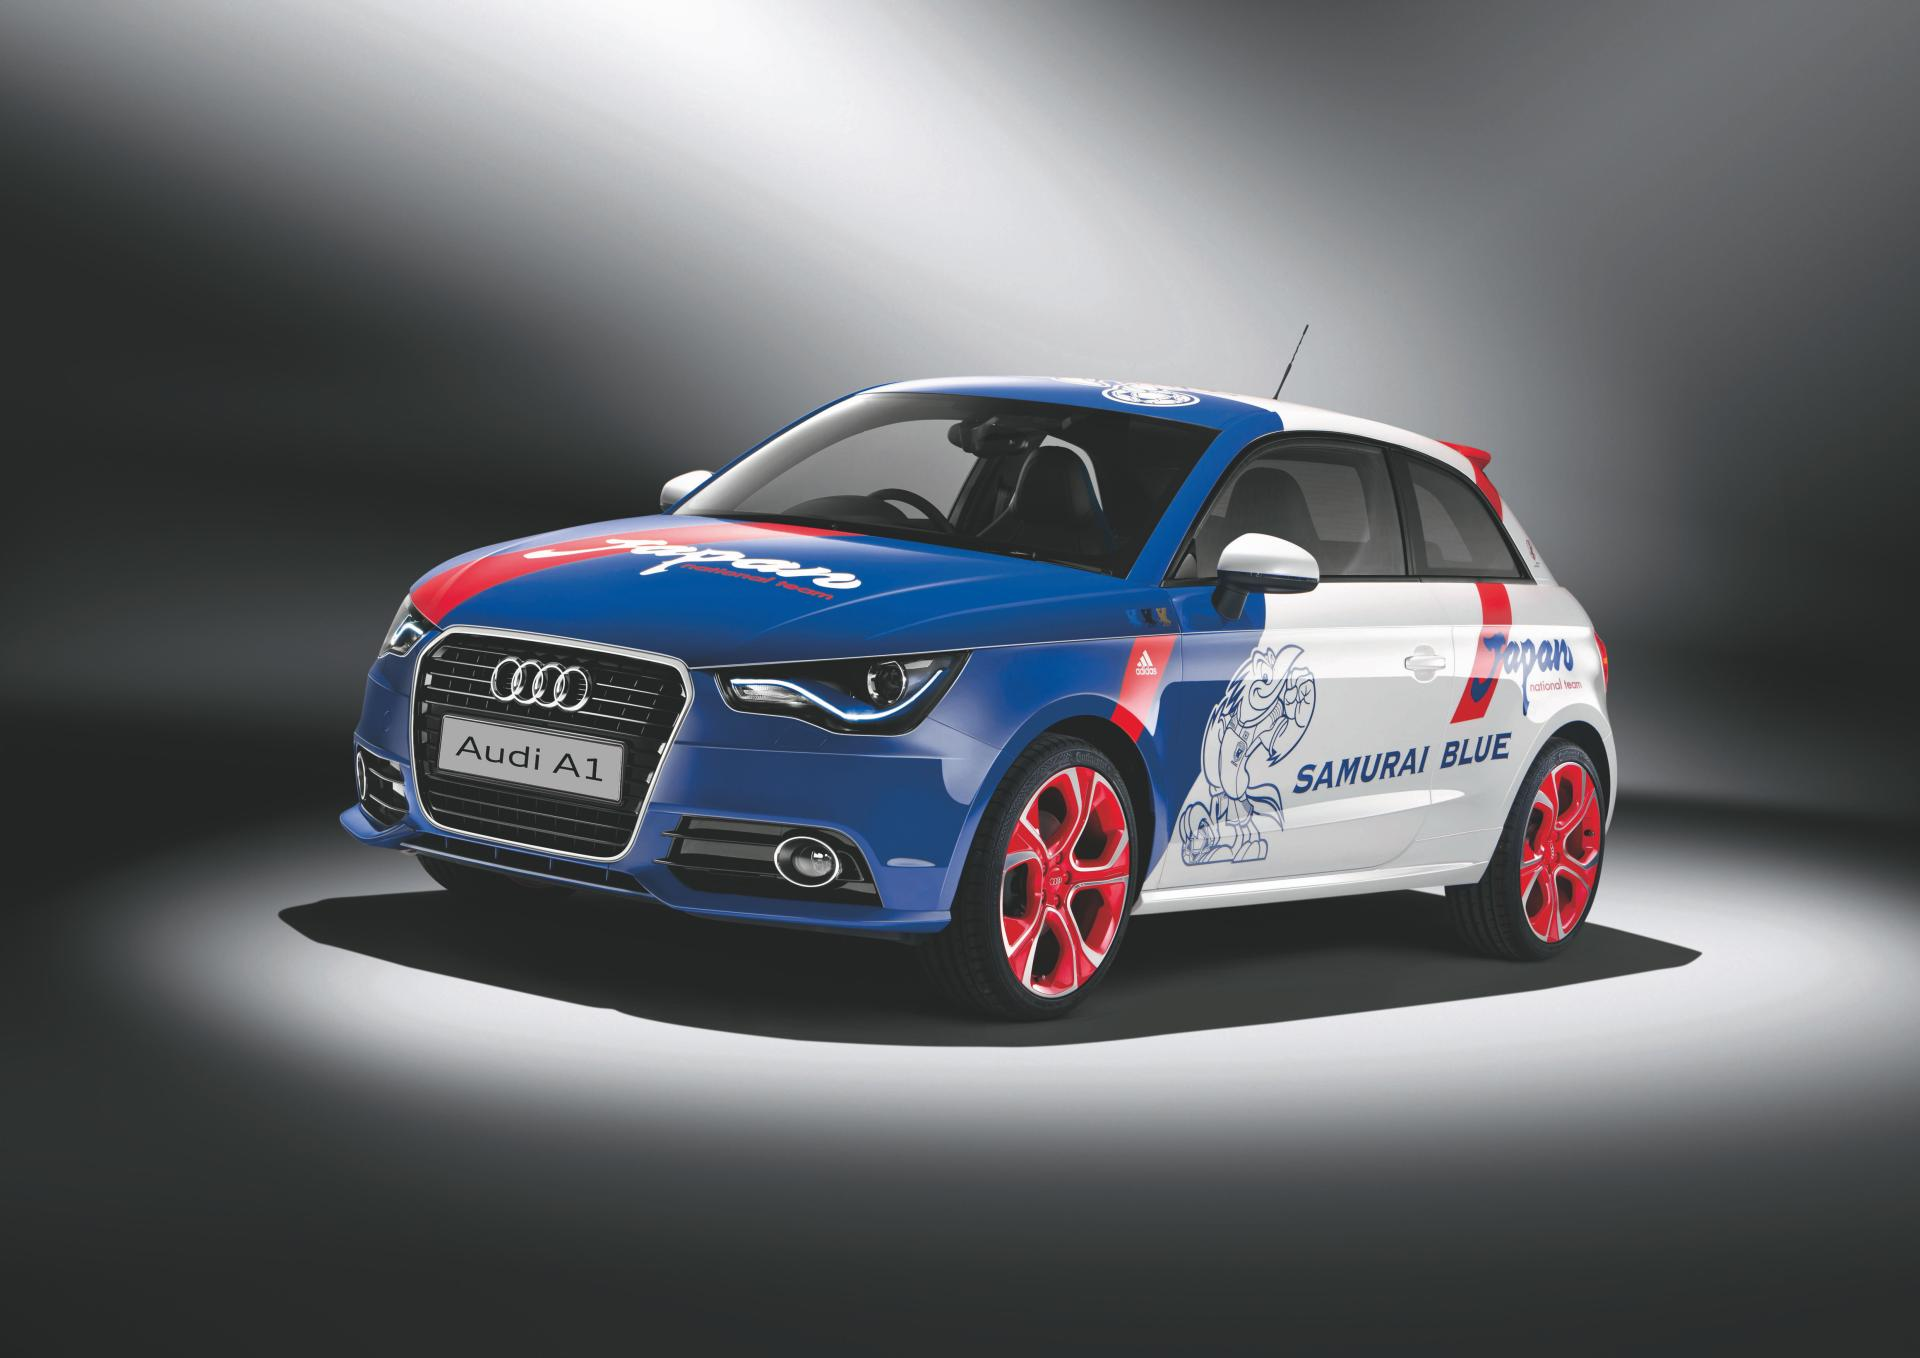 2012 audi a1 samurai blue technical specifications and data engine dimensions and mechanical. Black Bedroom Furniture Sets. Home Design Ideas